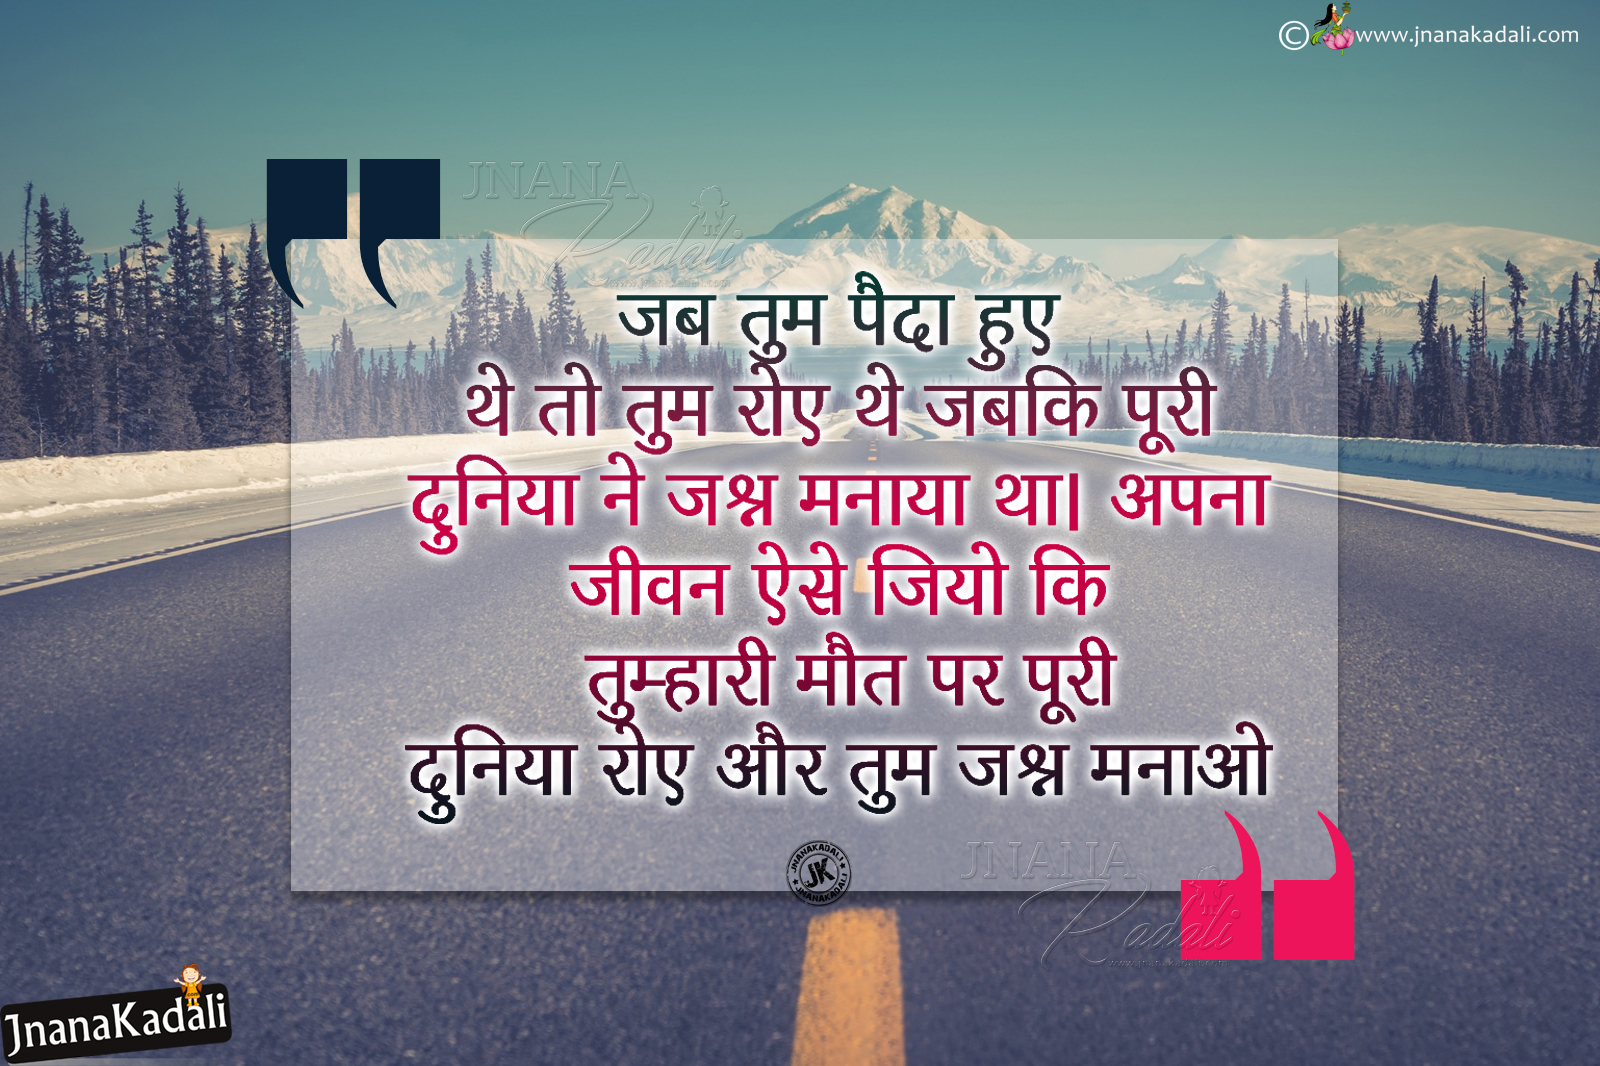 Top 10 Hindi Motivational Sayings With Hd Wallpapers Hindi Life Changing Quotes Brainysms